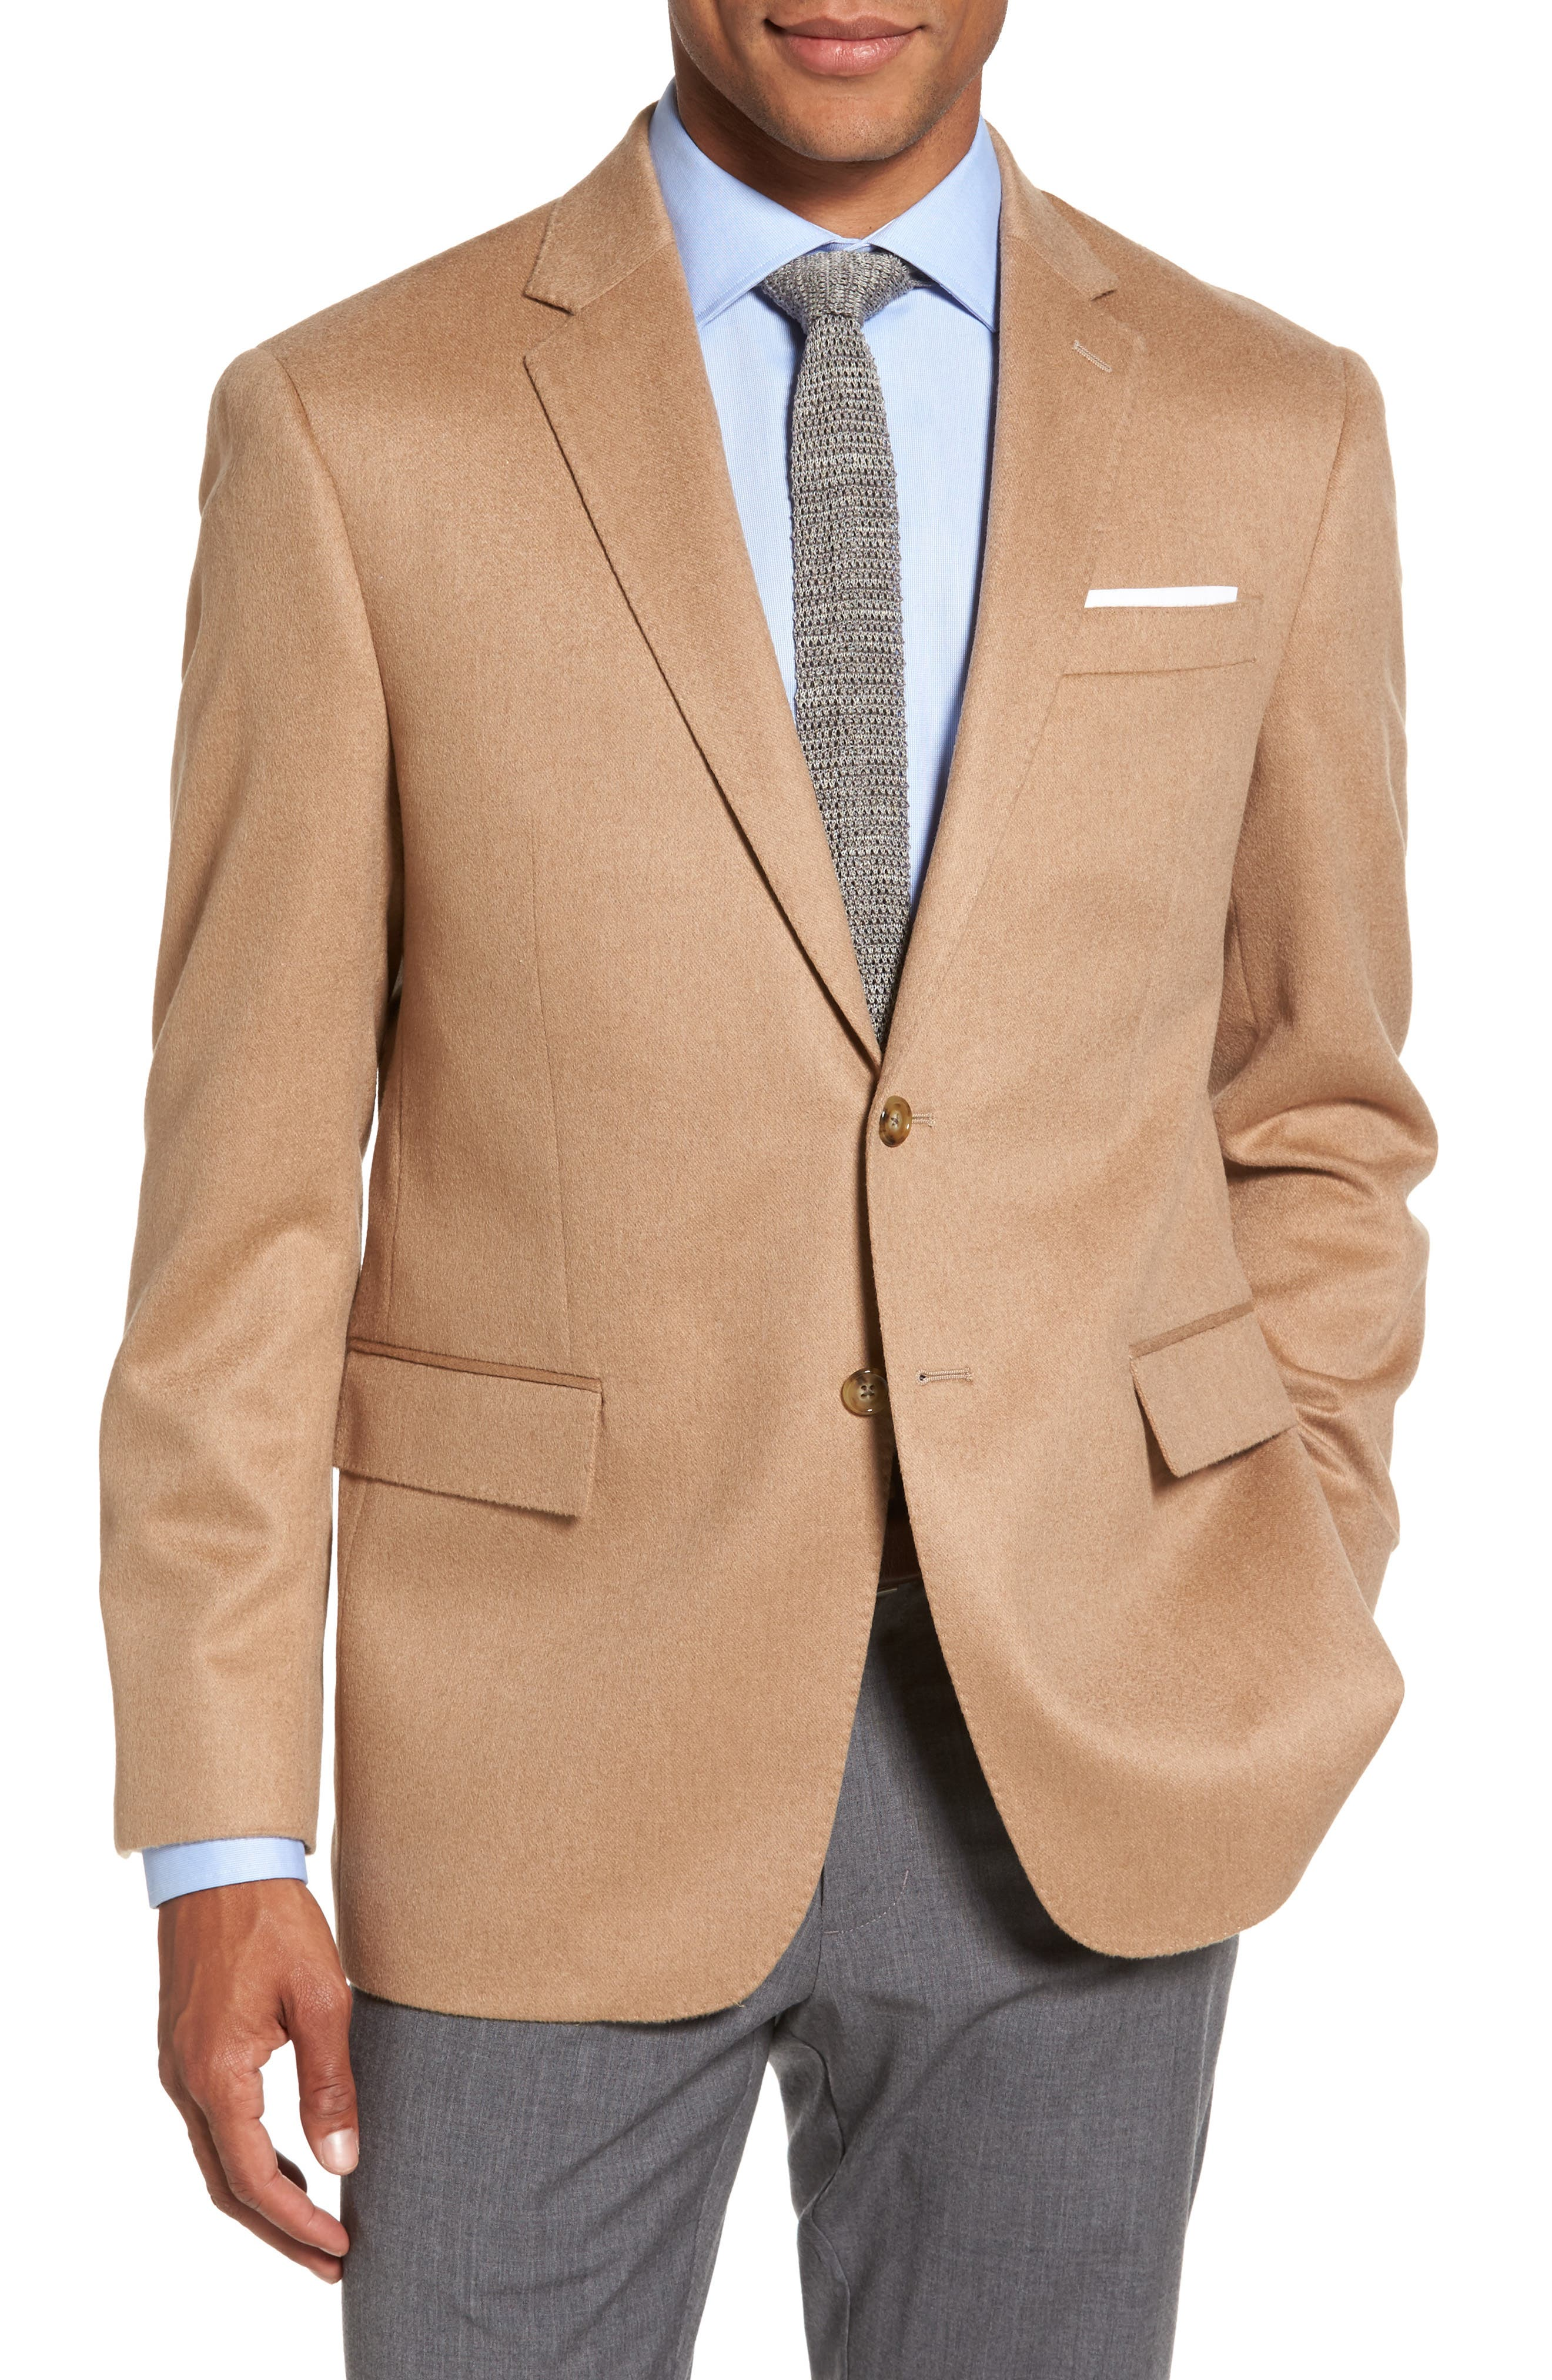 Men's Beige Suits & Sport Coats | Nordstrom